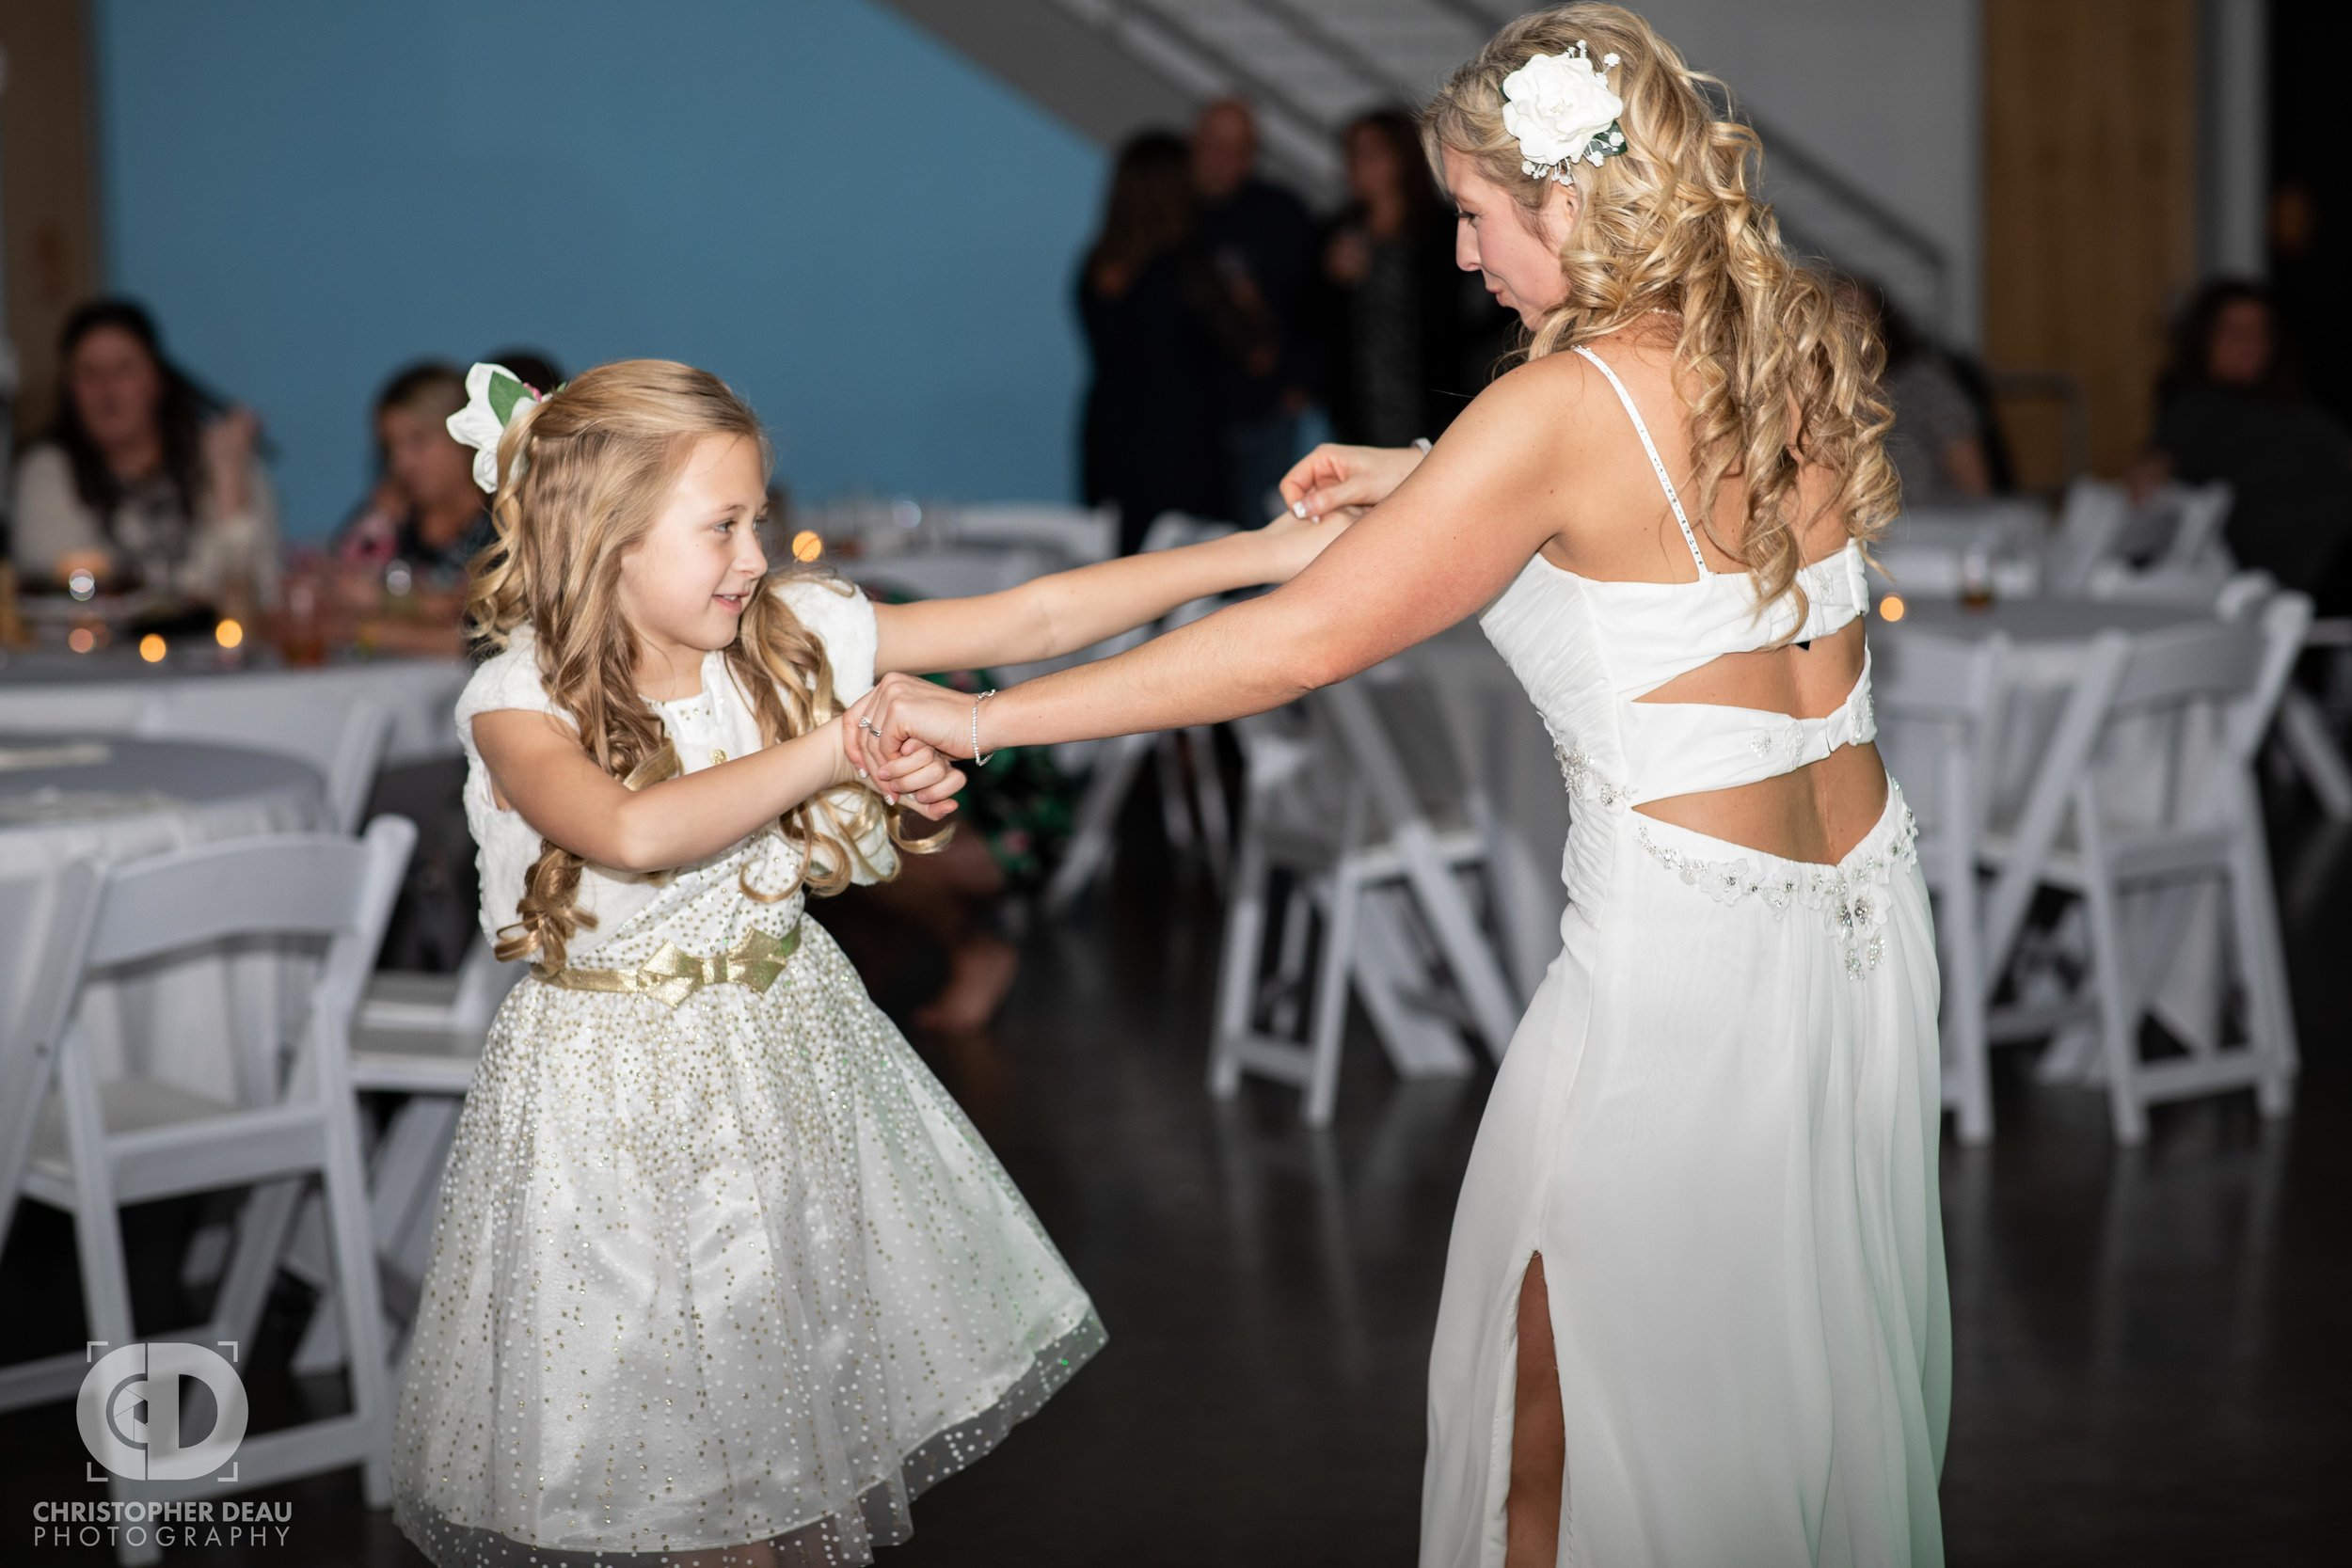 Bride dancing with her daughter